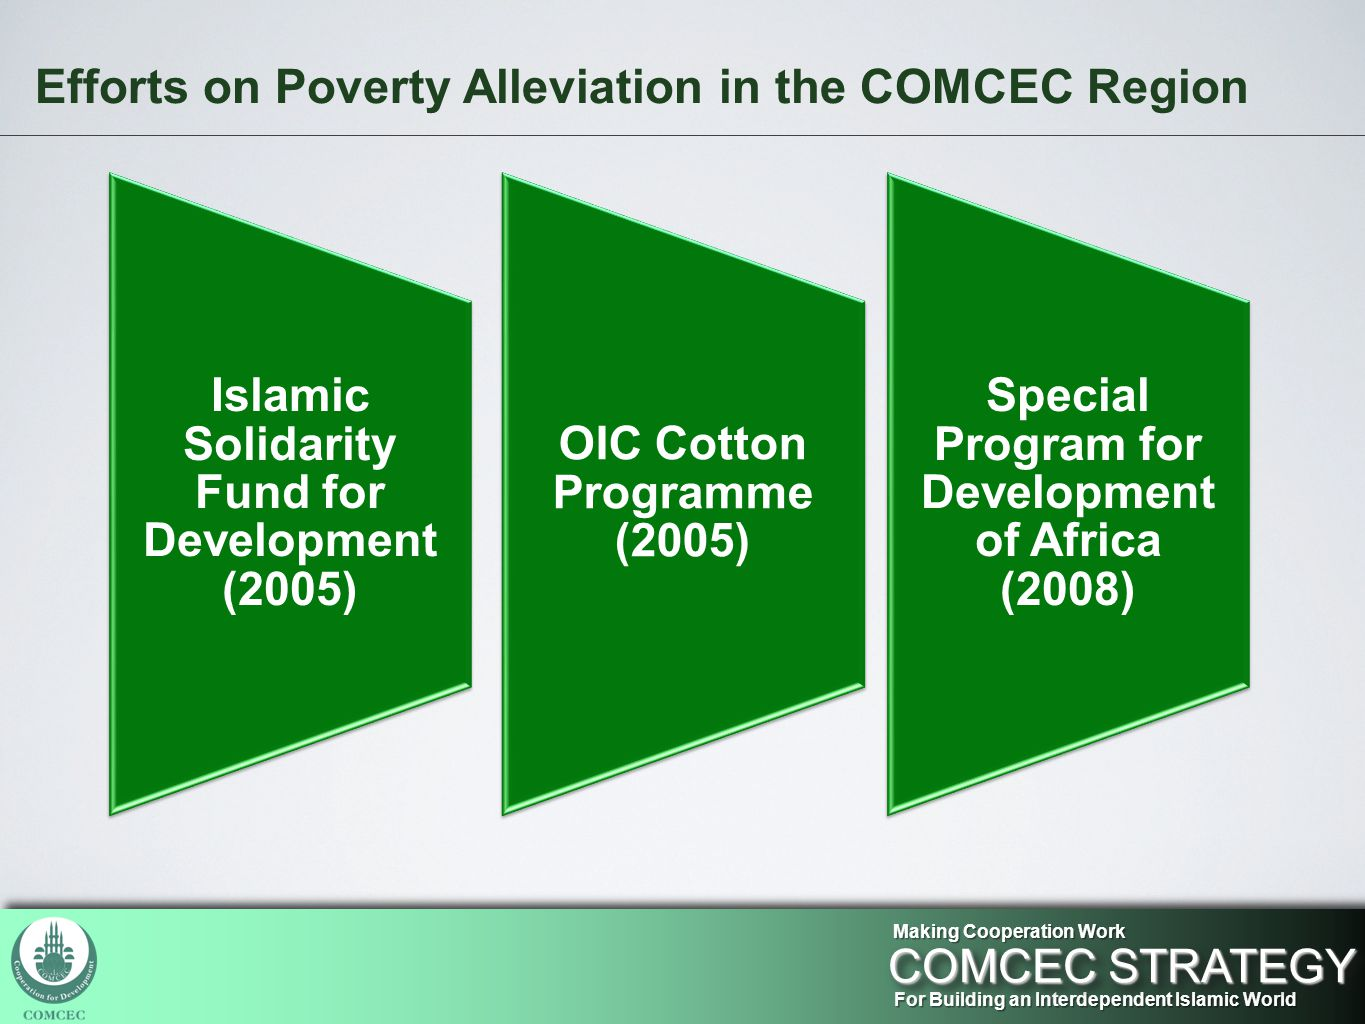 Efforts on Poverty Alleviation in the COMCEC Region For Building an Interdependent Islamic World COMCEC STRATEGY Making Cooperation Work Islamic Solidarity Fund for Development (2005) OIC Cotton Programme (2005) Special Program for Development of Africa (2008)